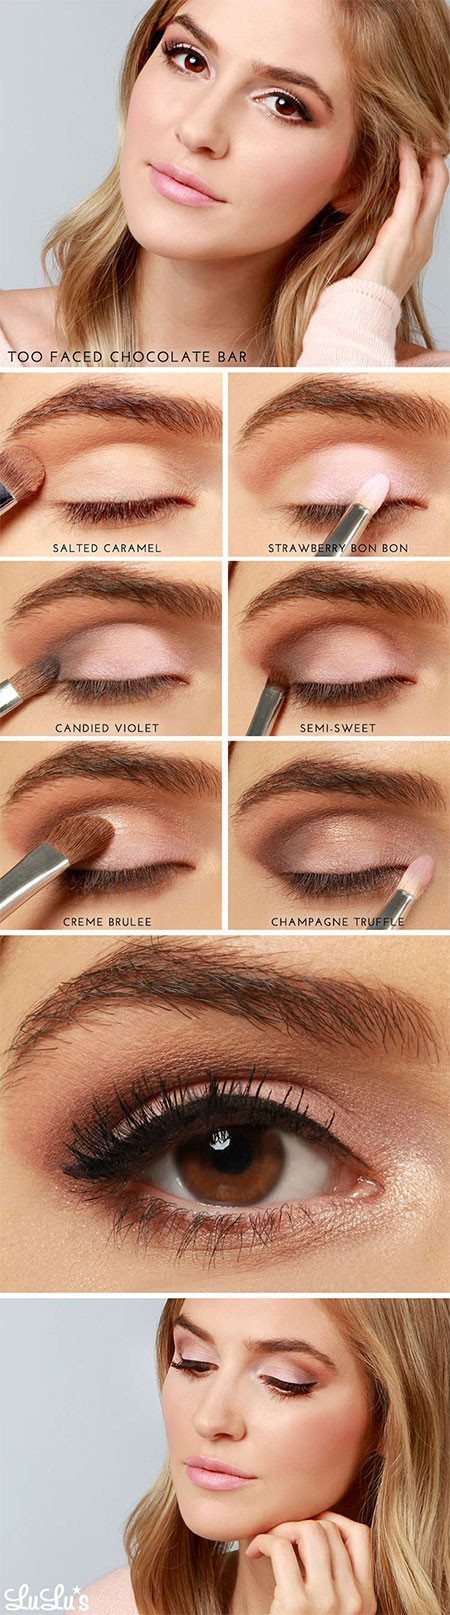 12-Easy-Step-By-Step-Natural-Eye-Make-Up-Tutorials-For-Beginners-2014-10